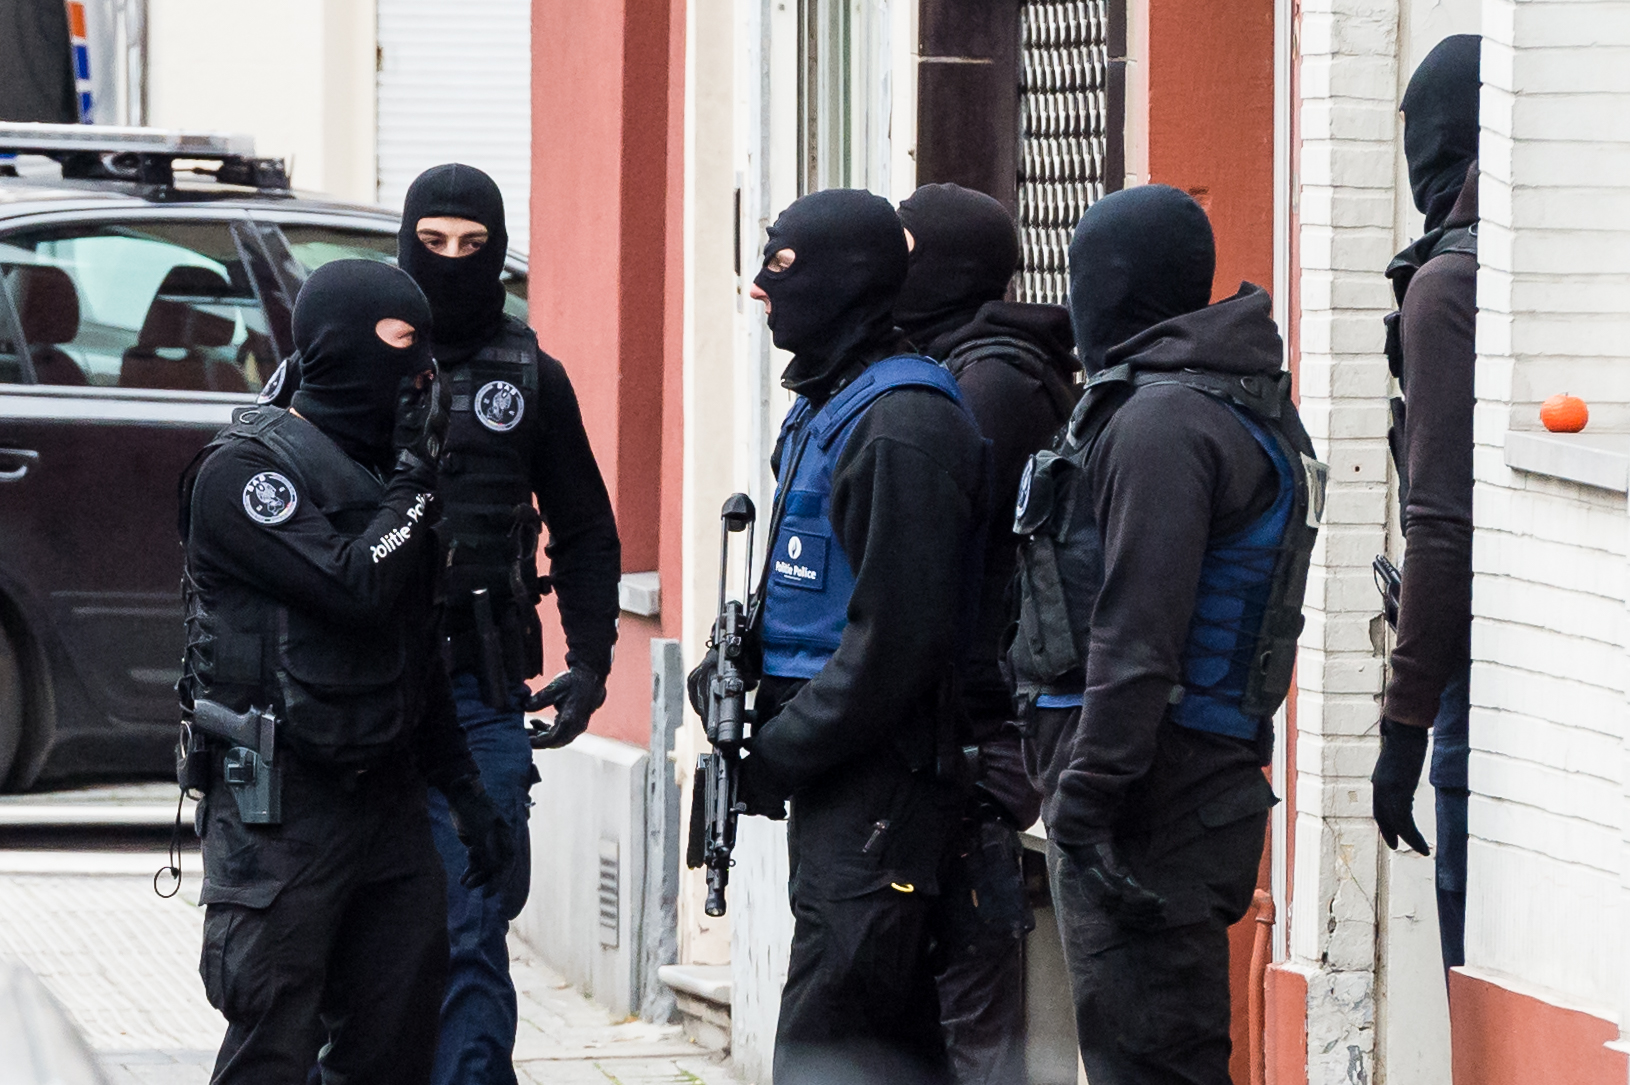 Armed police guard a street in Brussels on Nov. 16, 2015. A major action with heavily armed police is underway in the Brussels neighborhood of Molenbeek amid a manhunt for a suspect of the Paris attacks.